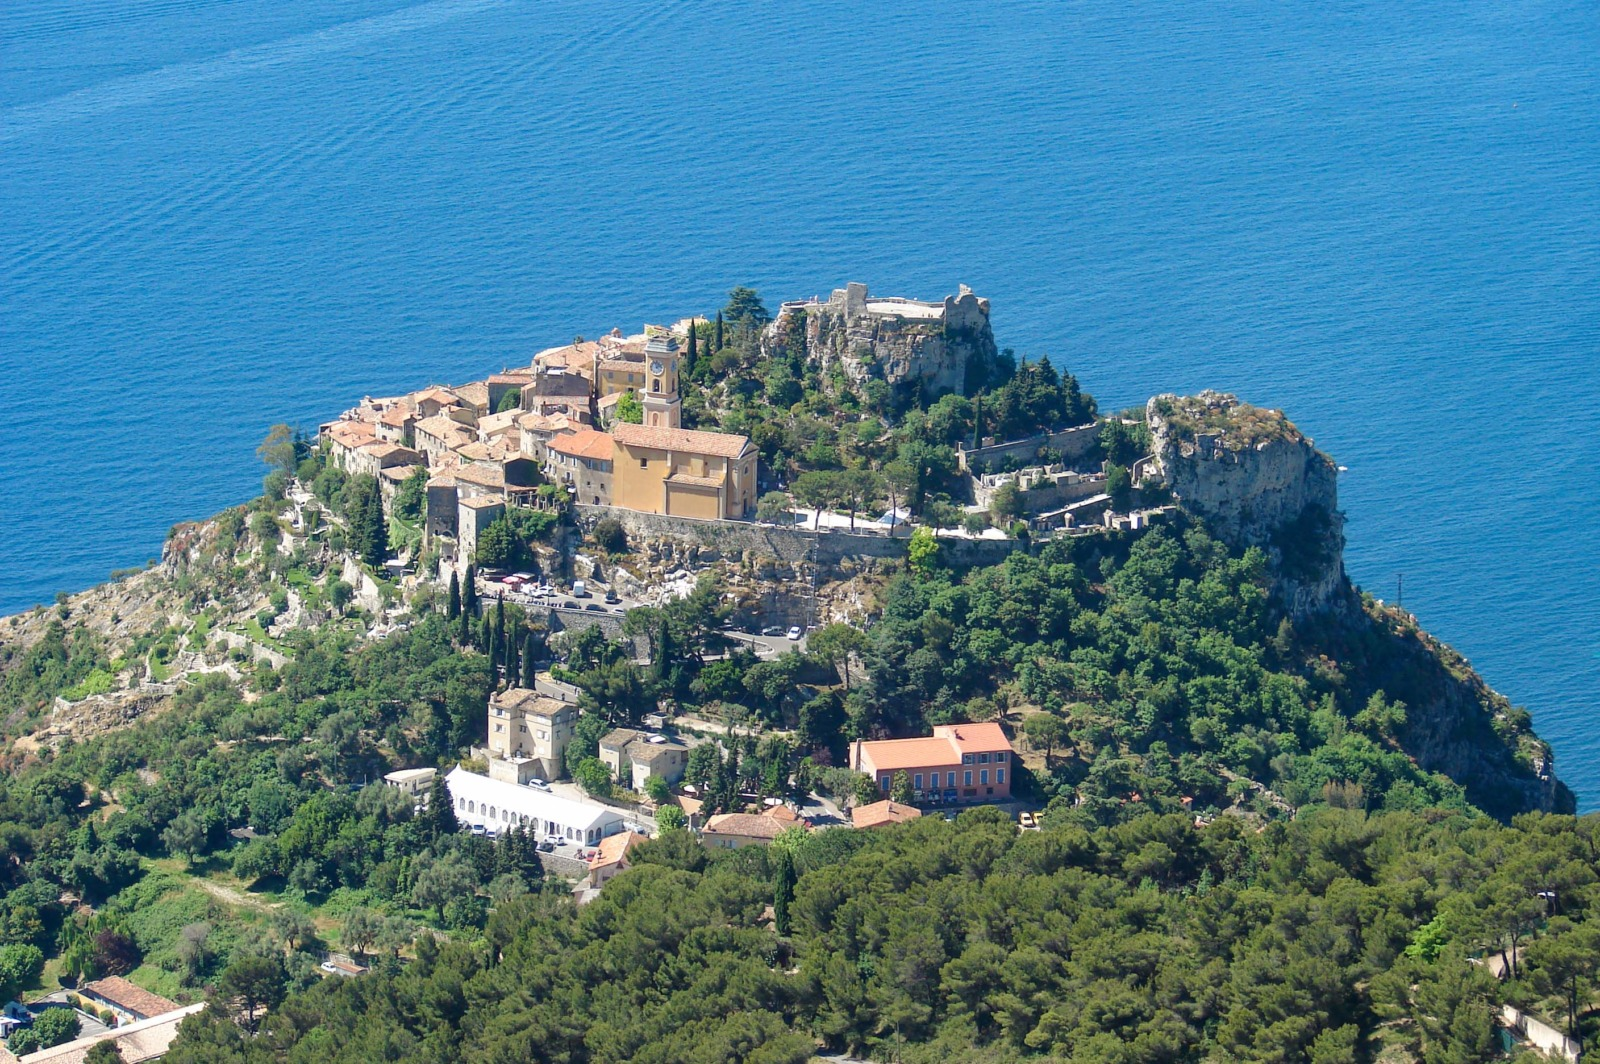 Eze © avu-edm - licence [CC BY 3.0] from Wikimedia Commons